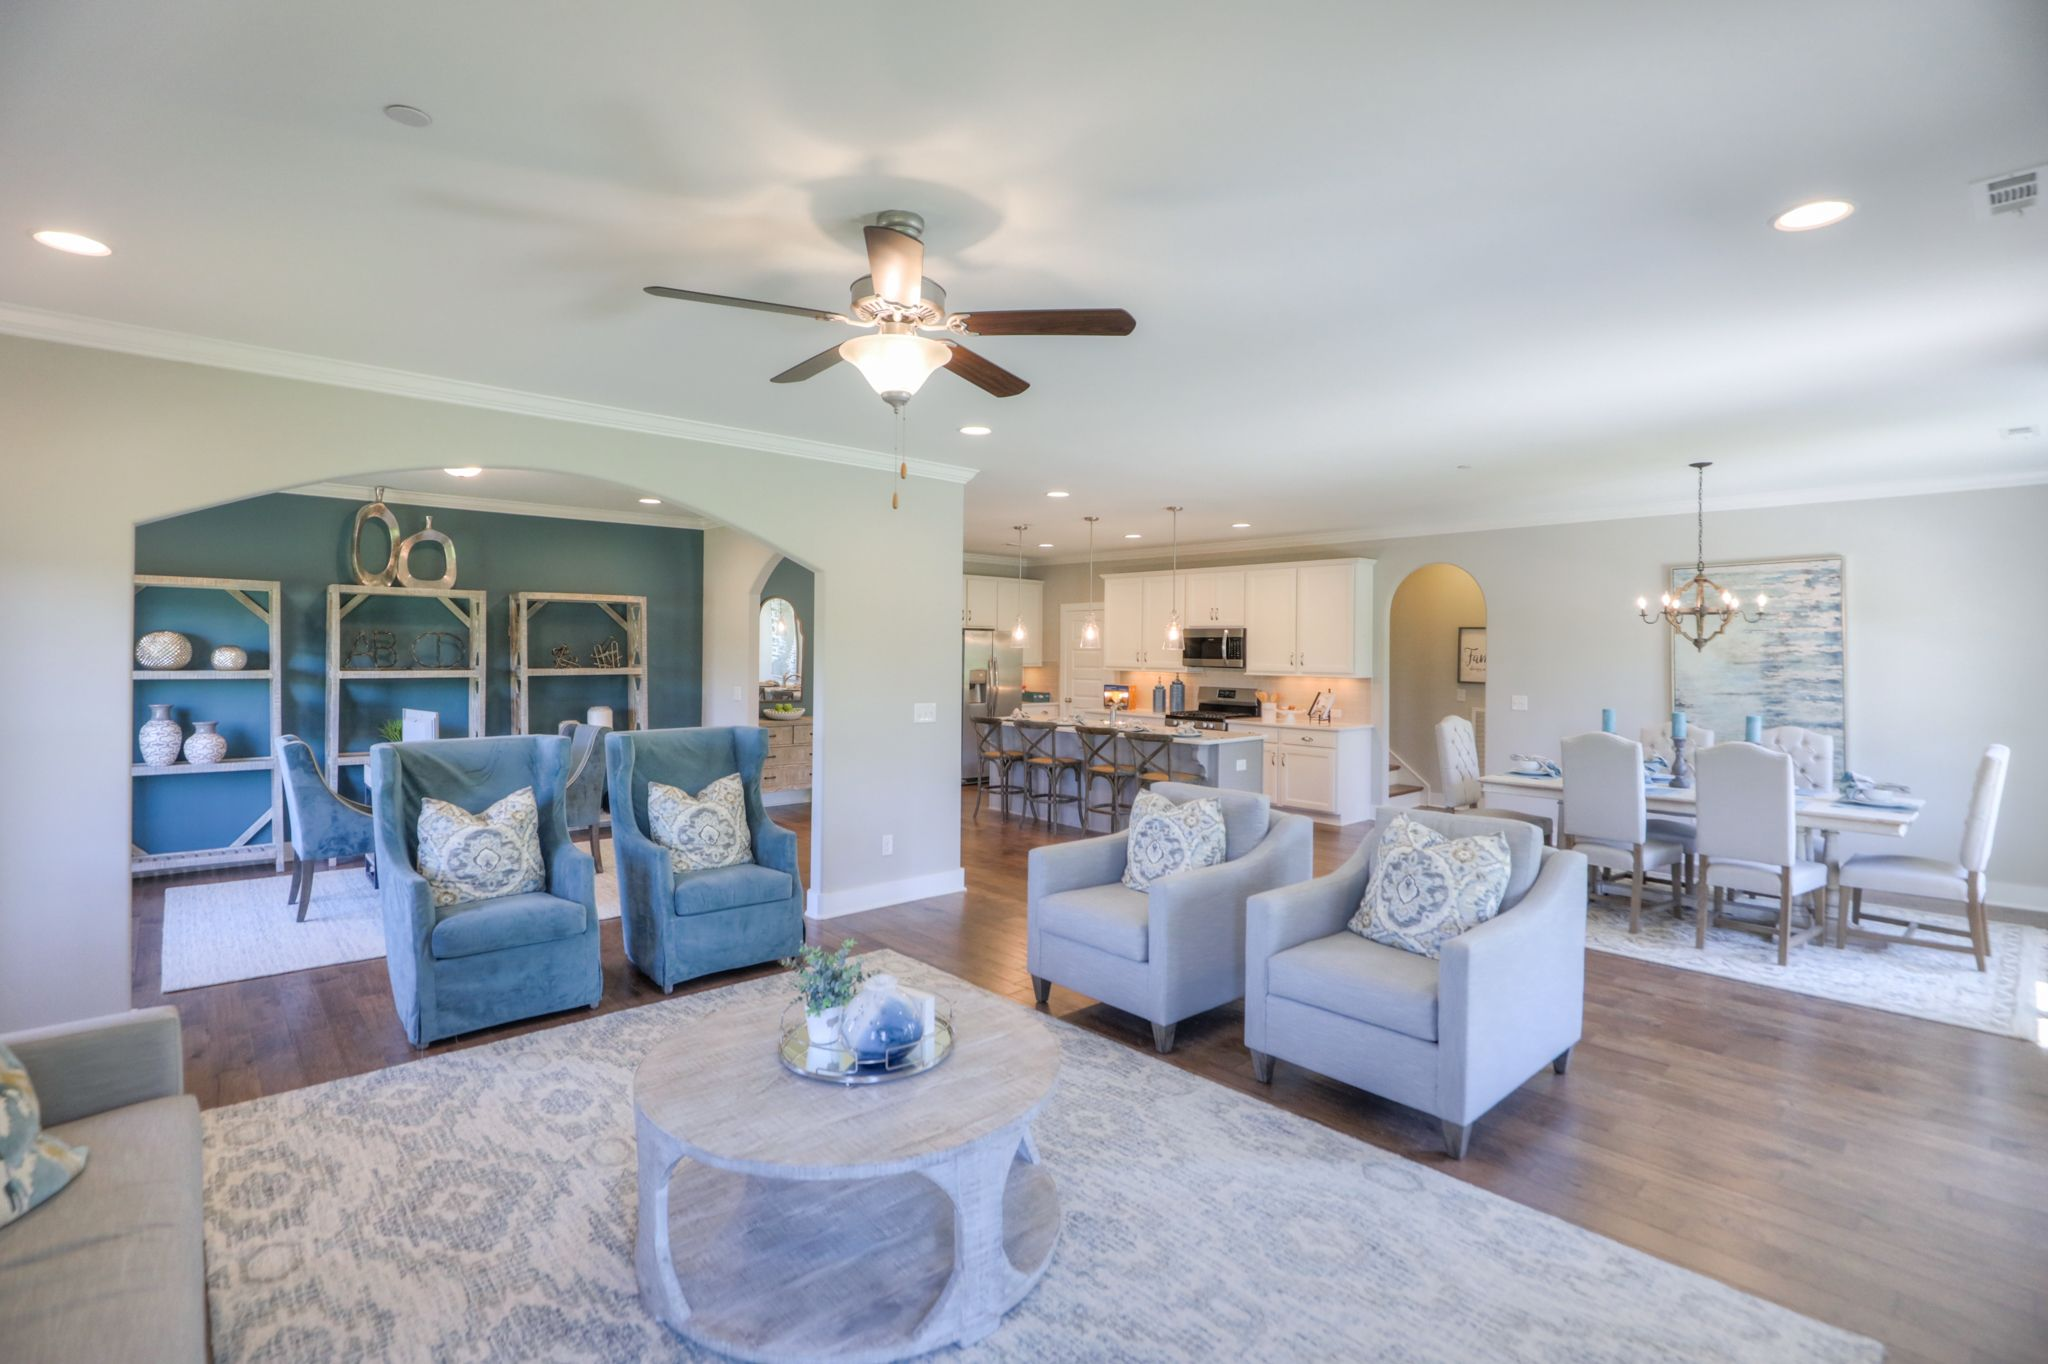 Living Area featured in the 8752 Stuart Farm Avenue By Goodall Homes in Owensboro, KY